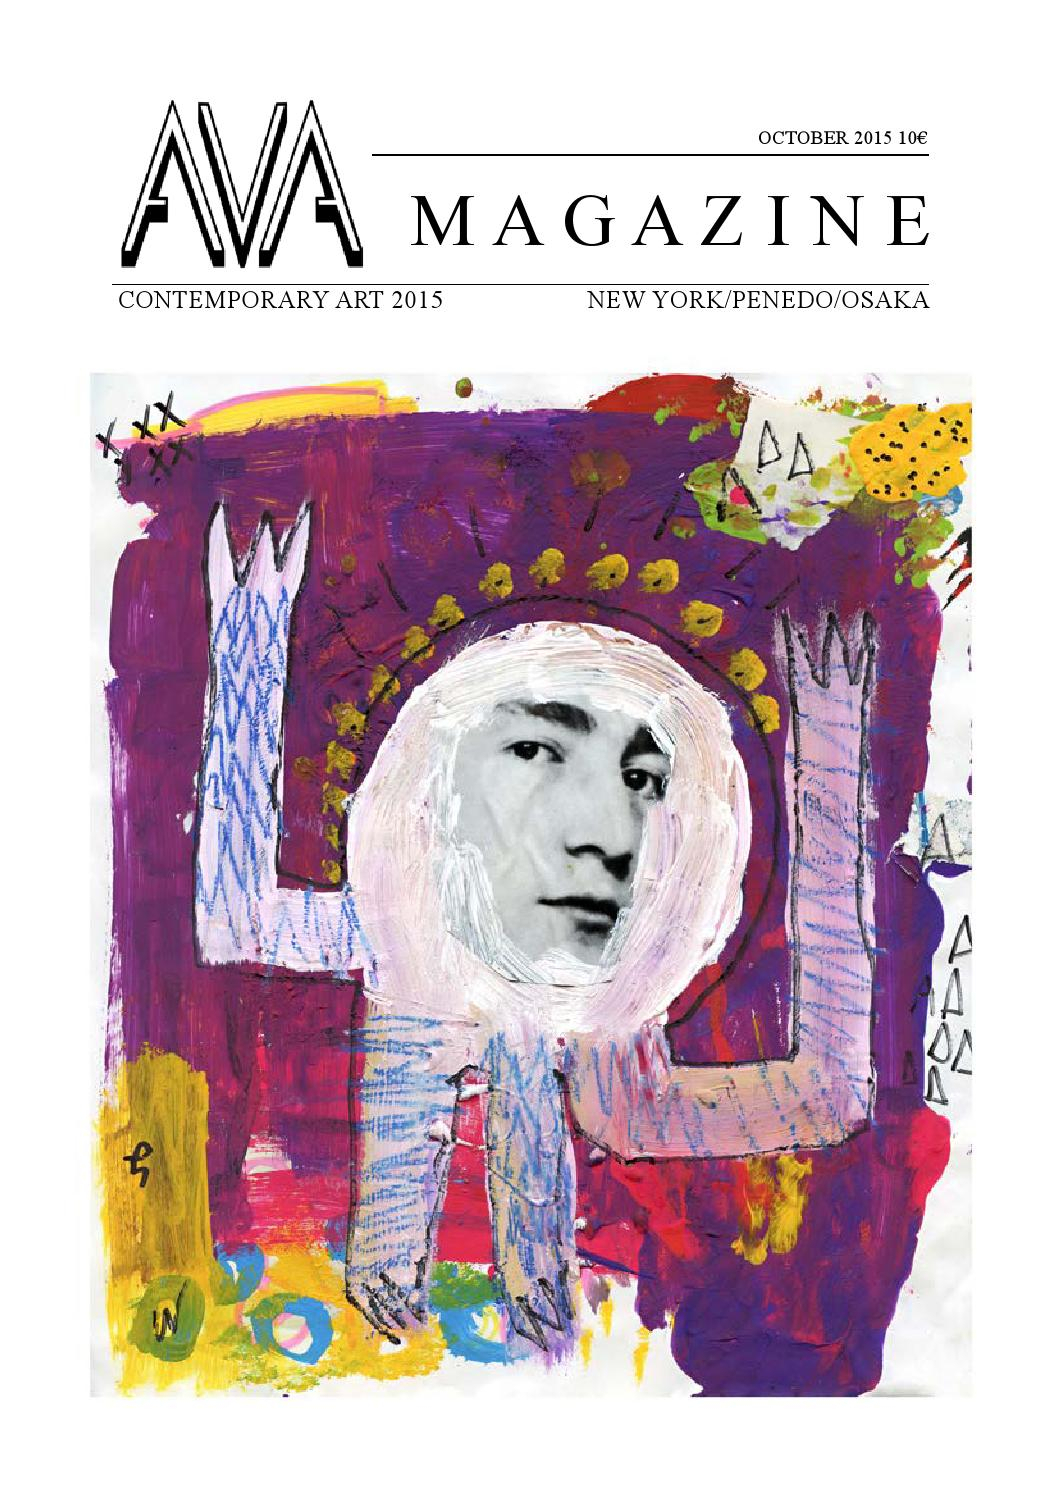 Ava Magazine October 2015helena – Issuu In 2018 Blended Fabric Freedom Verse Tapestries And Wall Hangings (View 8 of 21)